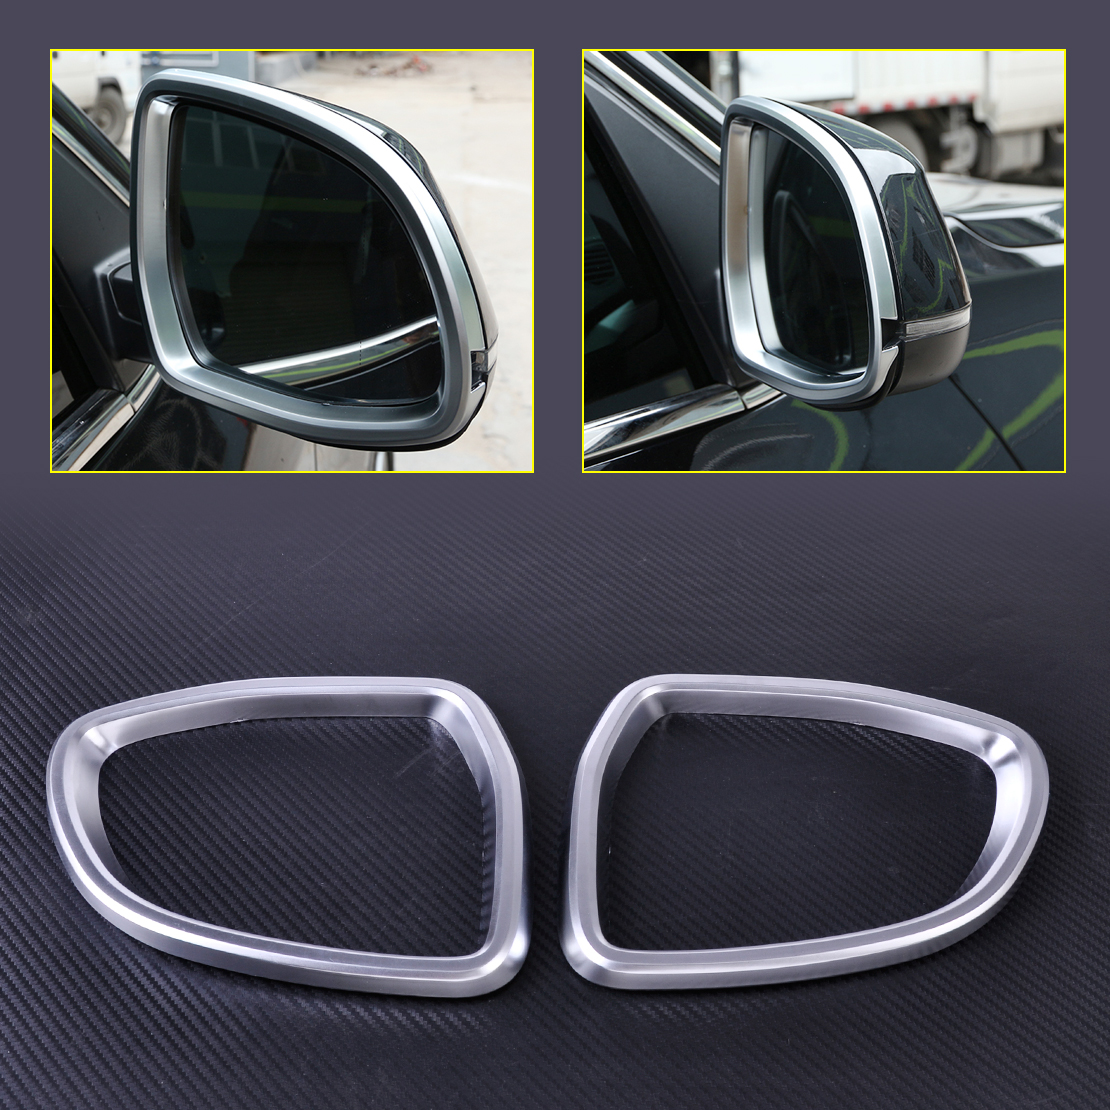 CITALL 2PCS Car Styling Matt Chrome Plated Rear View Mirror Frame Rearview Cover Trim Fit for BMW X5 X6 F15 F16 2014 2015 2016